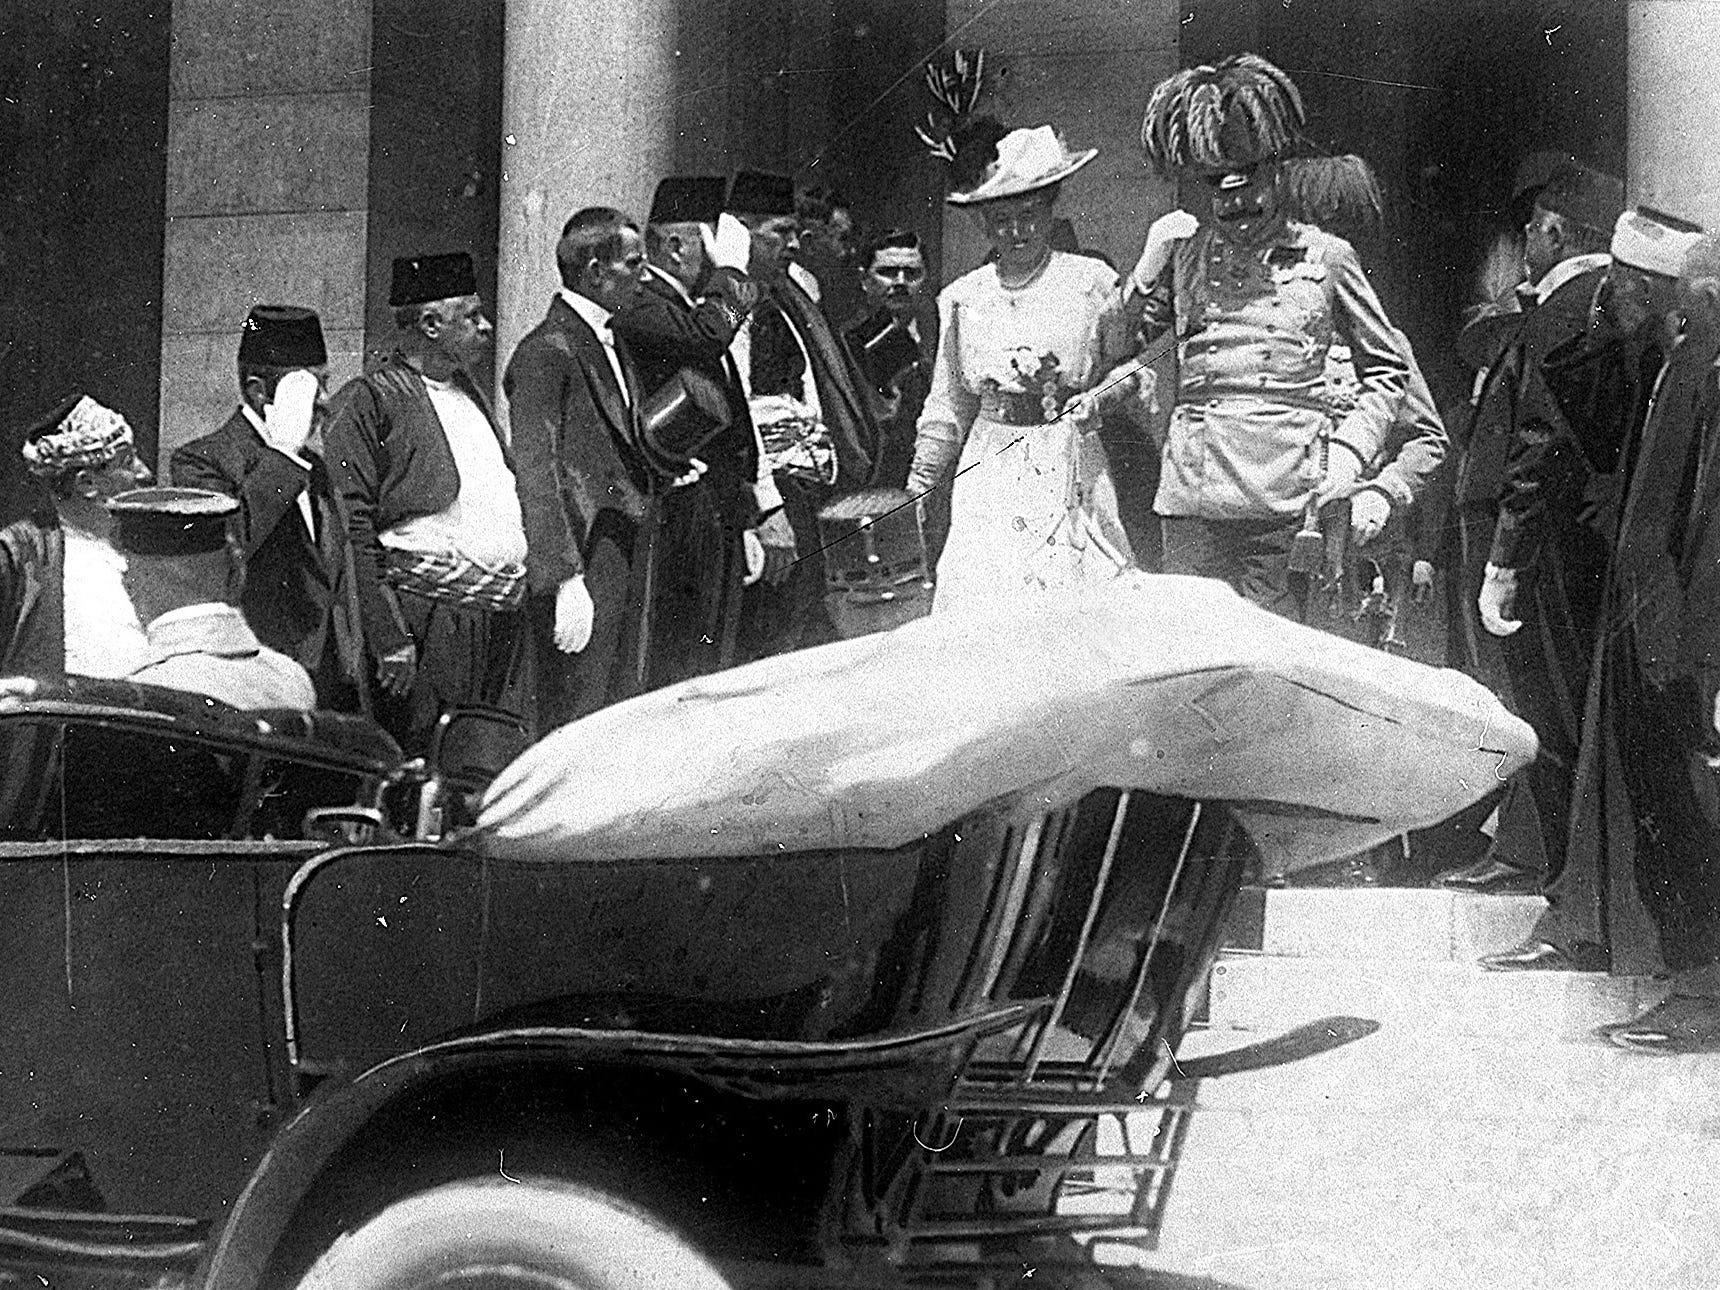 In this June 28, 1914, file photo, the Archduke of Austria Franz Ferdinand, center right, and his wife Sophie, center left, walk to their a car in Sarajevo, Yugoslavia. This photo was taken minutes before the assassination of Ferdinand and his wife,  which set off a chain of events that would eventually lead to World War I.